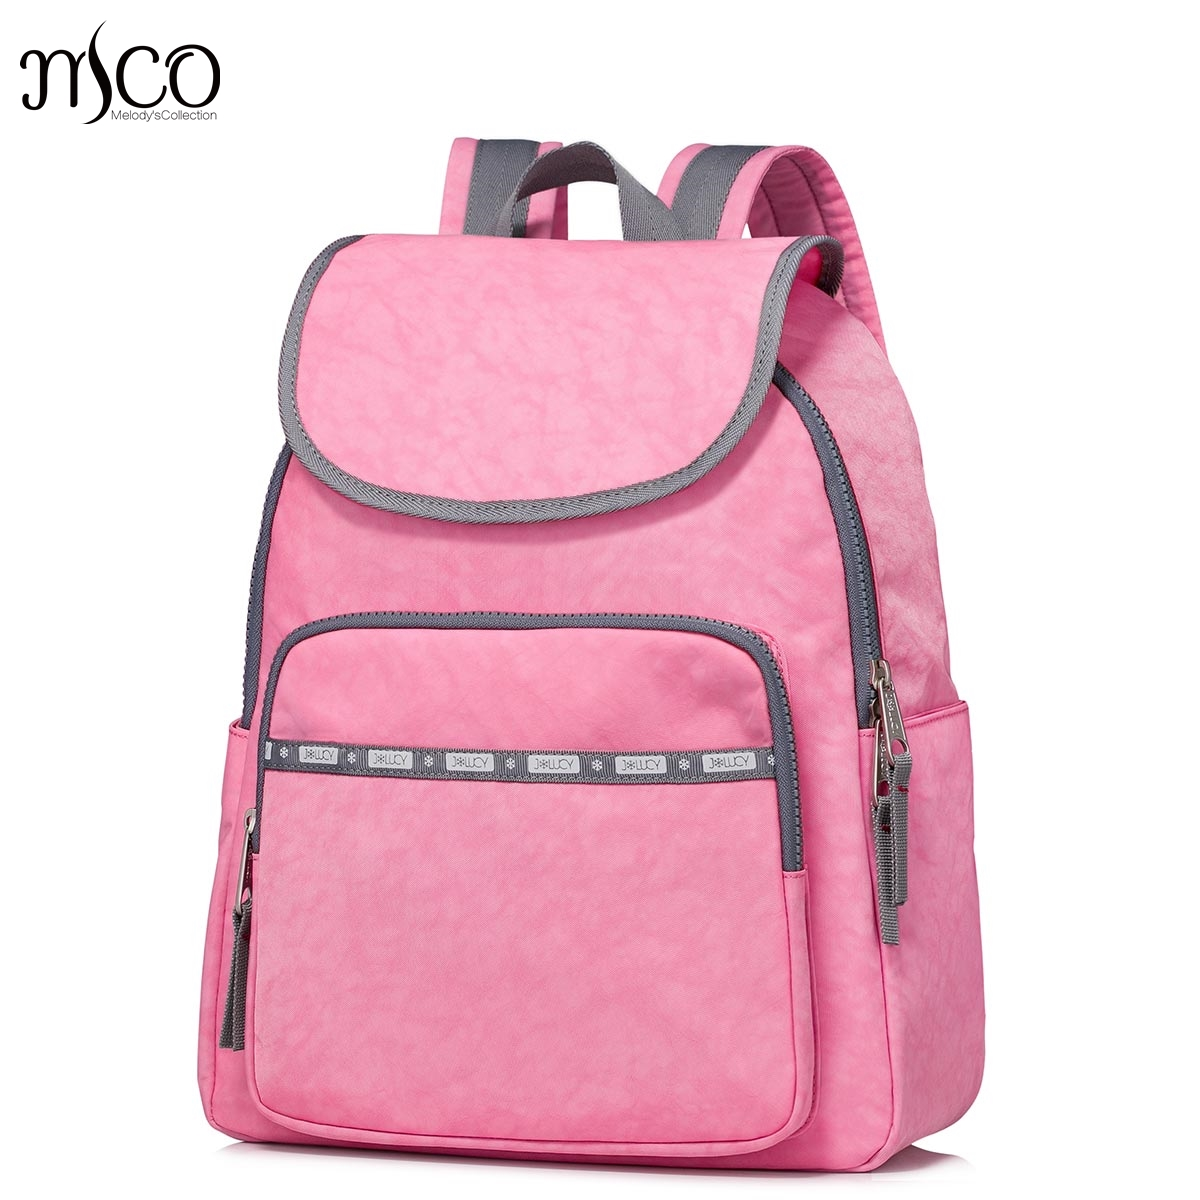 High Quality Women Nylon Waterproof Campus Backpack For Teenage Girls Student Collegiate School Travel PINK Backpack Laptop Bag high quality women nylon waterproof campus backpack for teenage girls student collegiate school travel pink backpack laptop bag